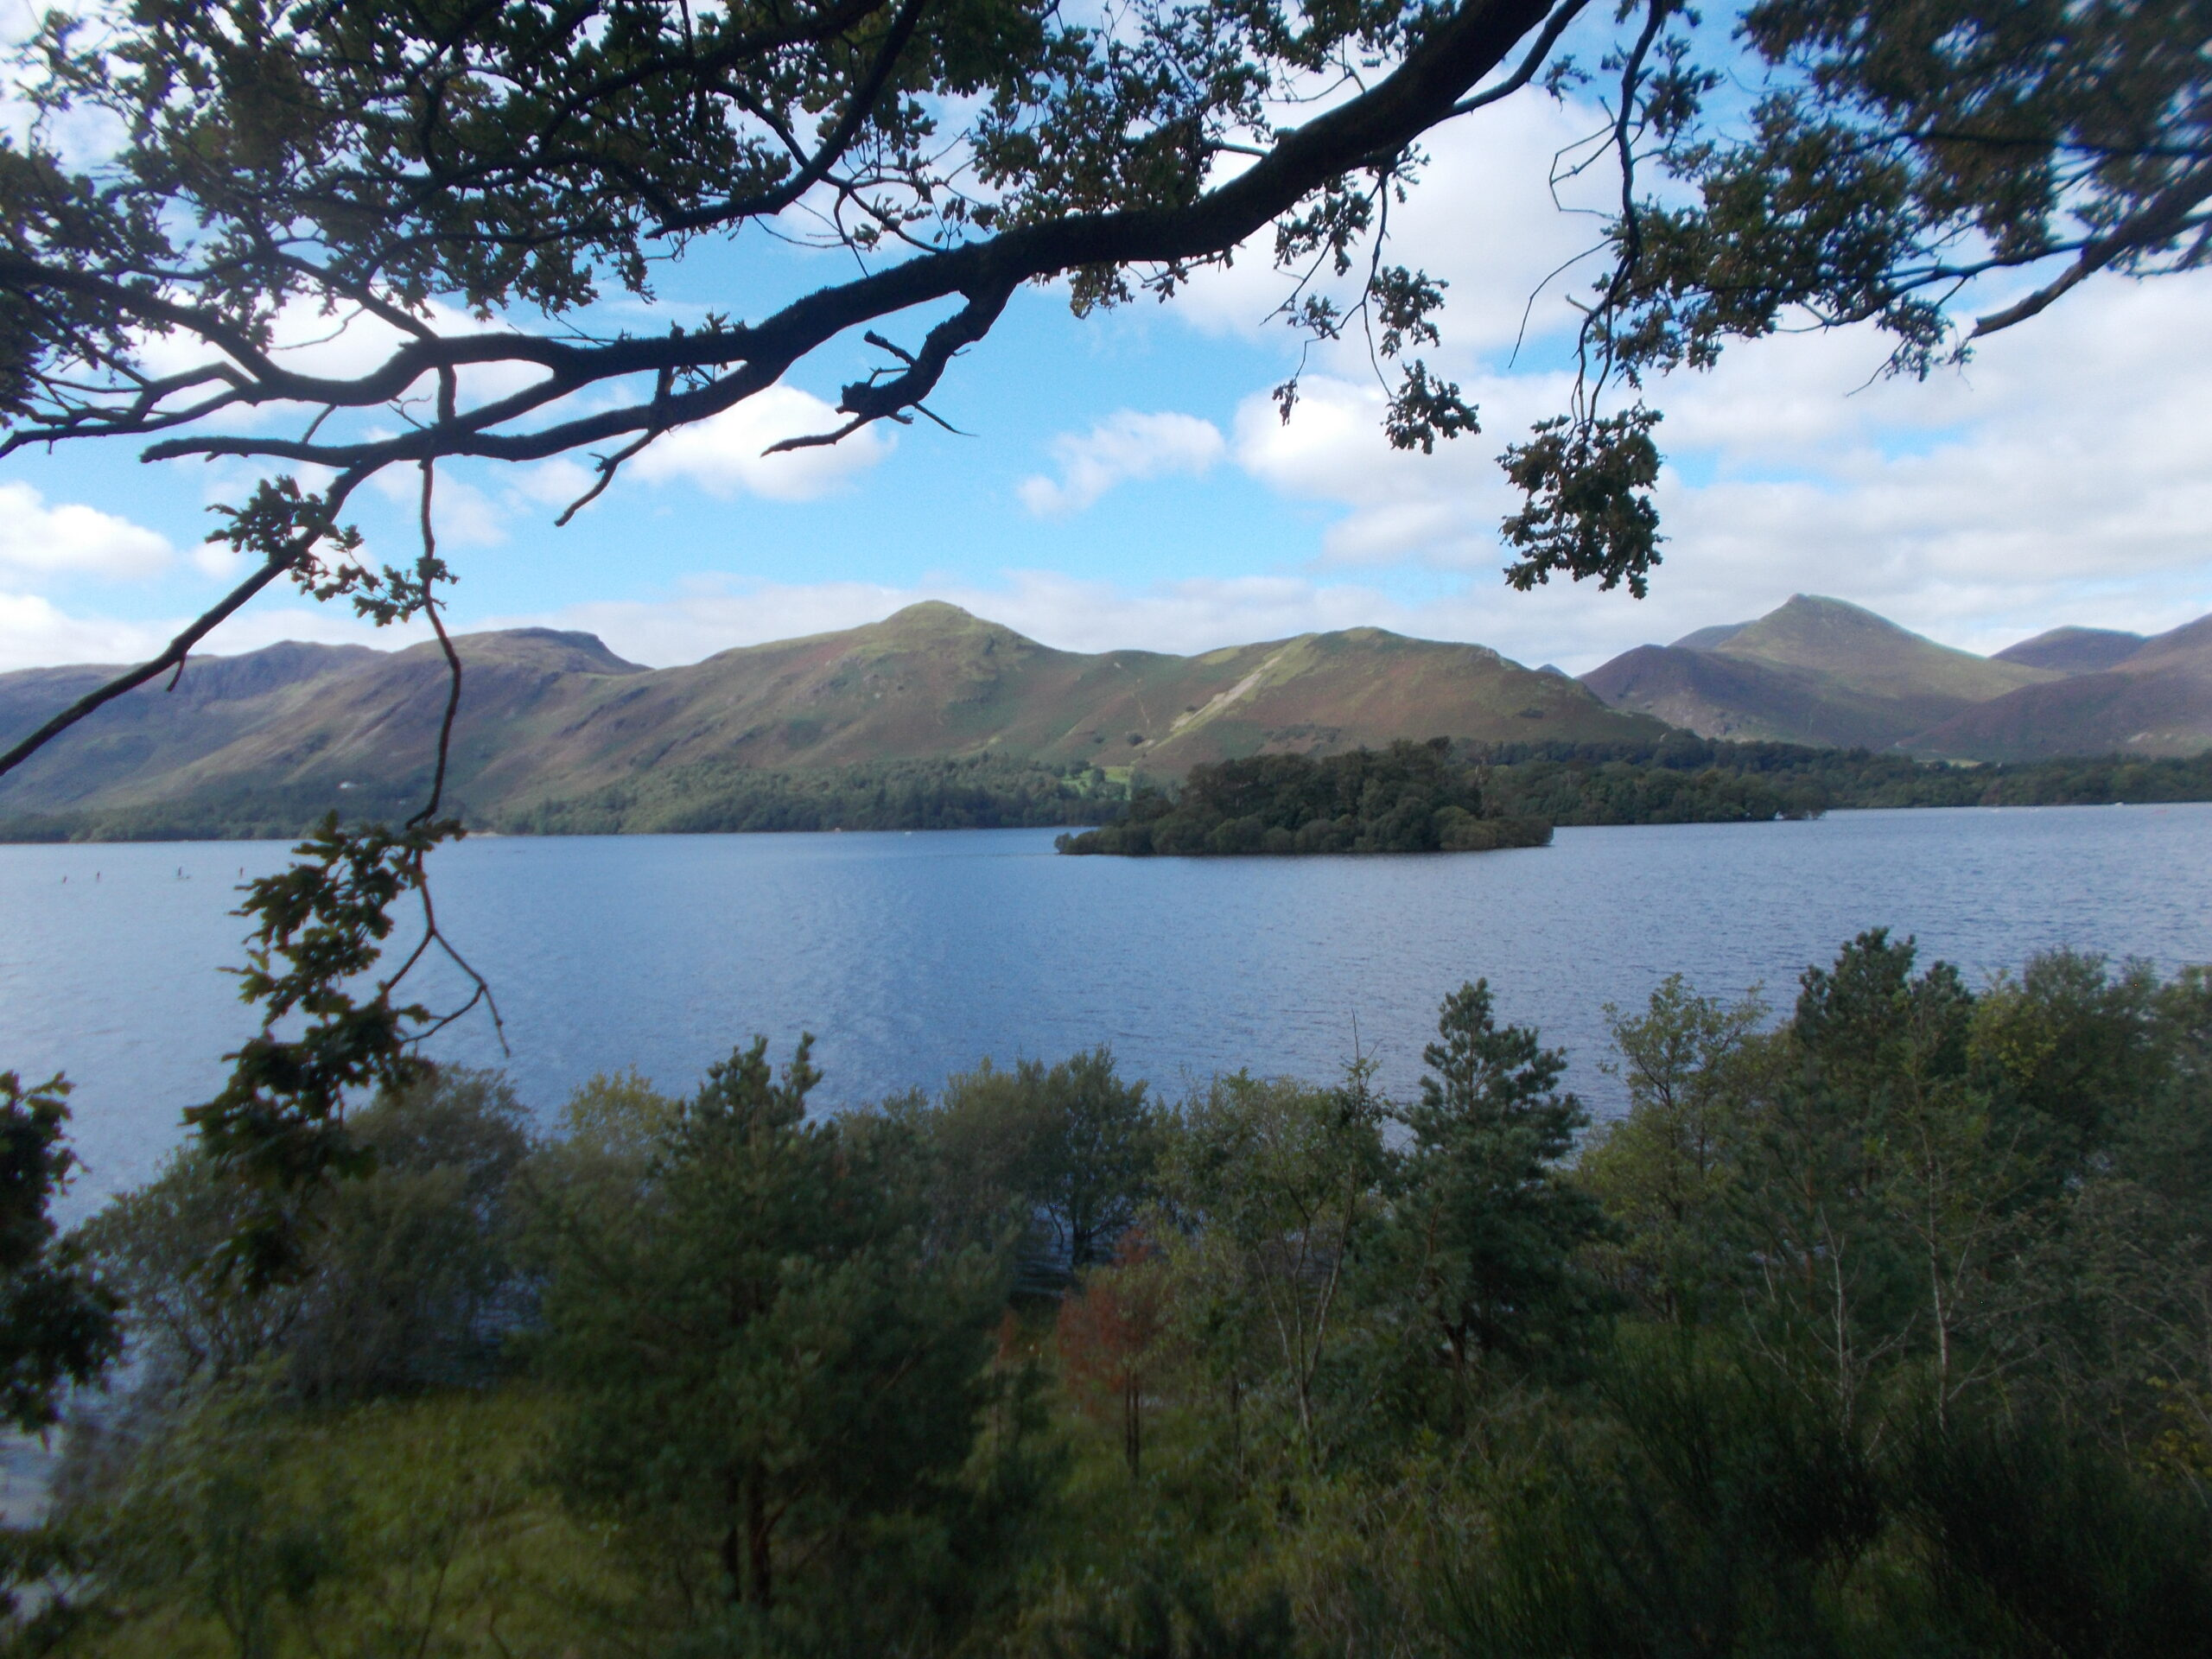 Land's End to Keswick (Part 2: To Gloucester Services)